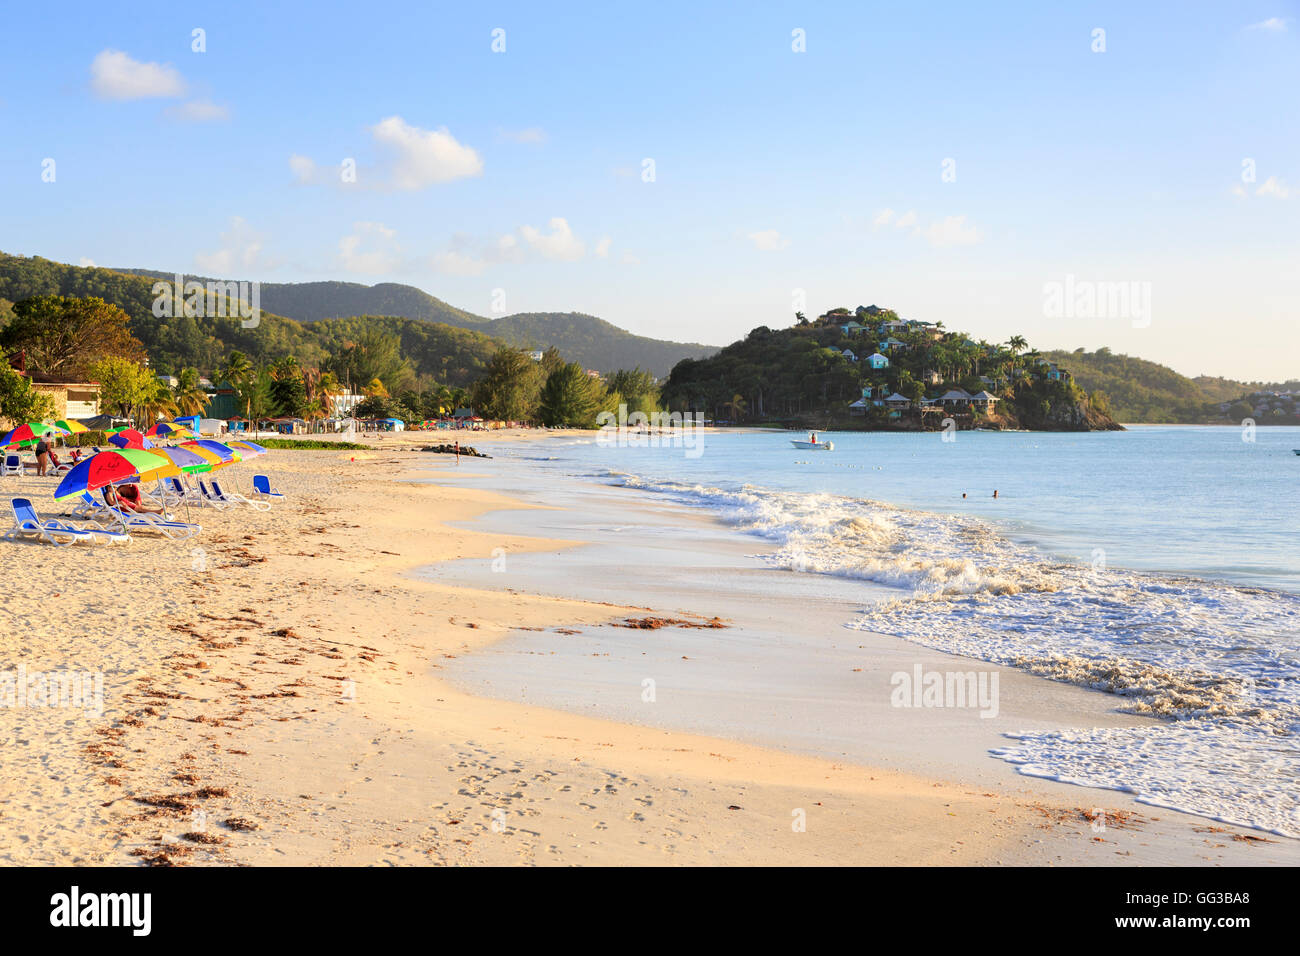 Antiguan landscape and sightseeing: Golden sand, blue sky and colourful beach umbrellas at Jolly Harbour on a sunny - Stock Image